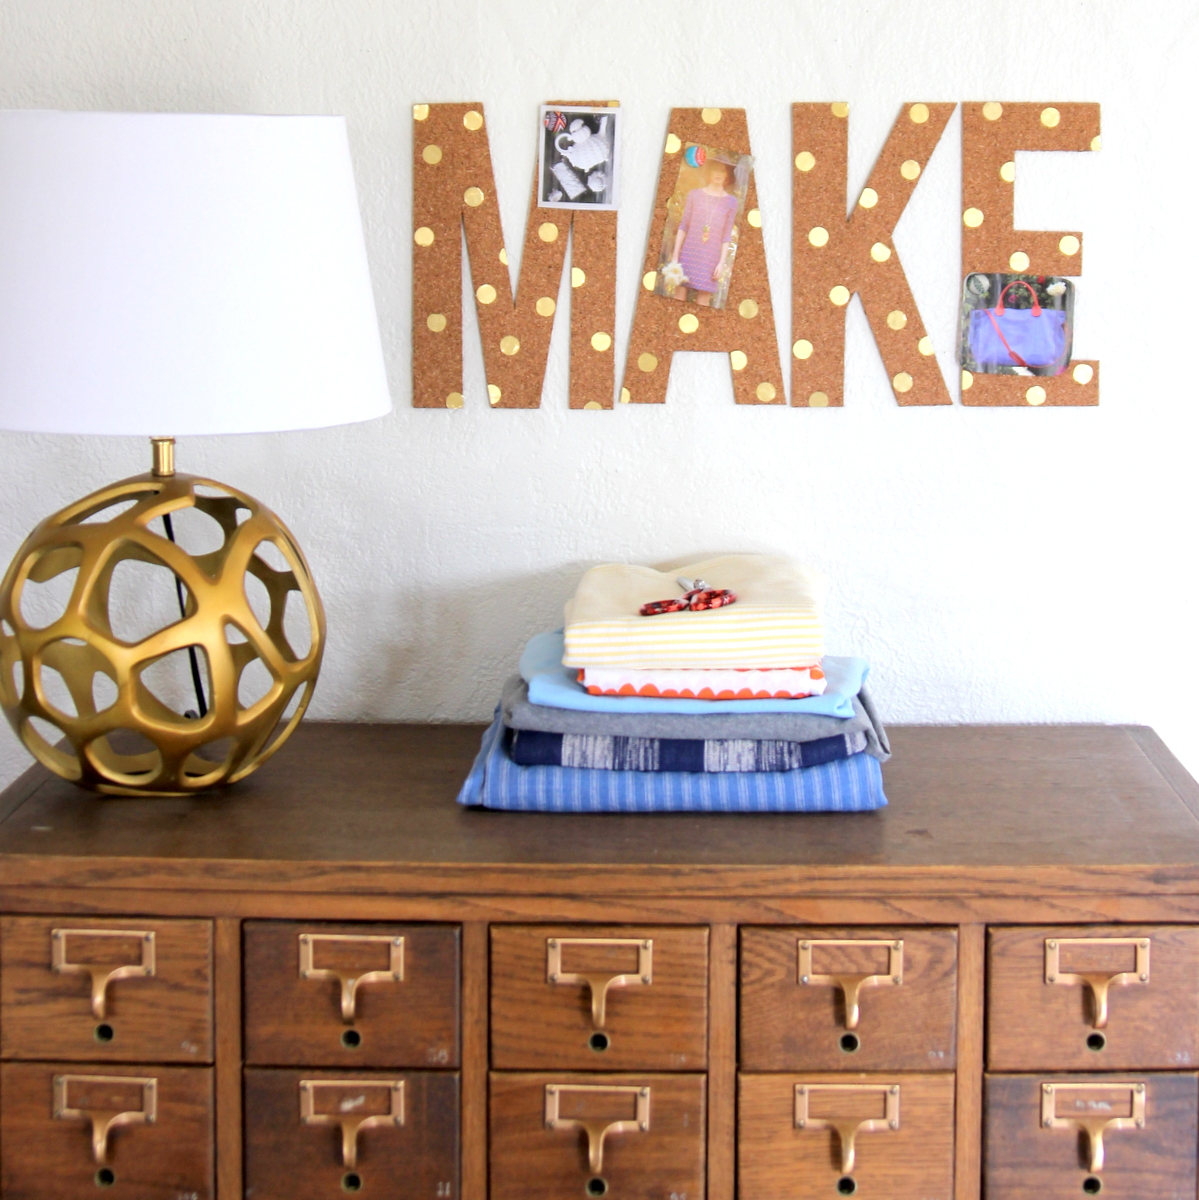 how to make cork letters